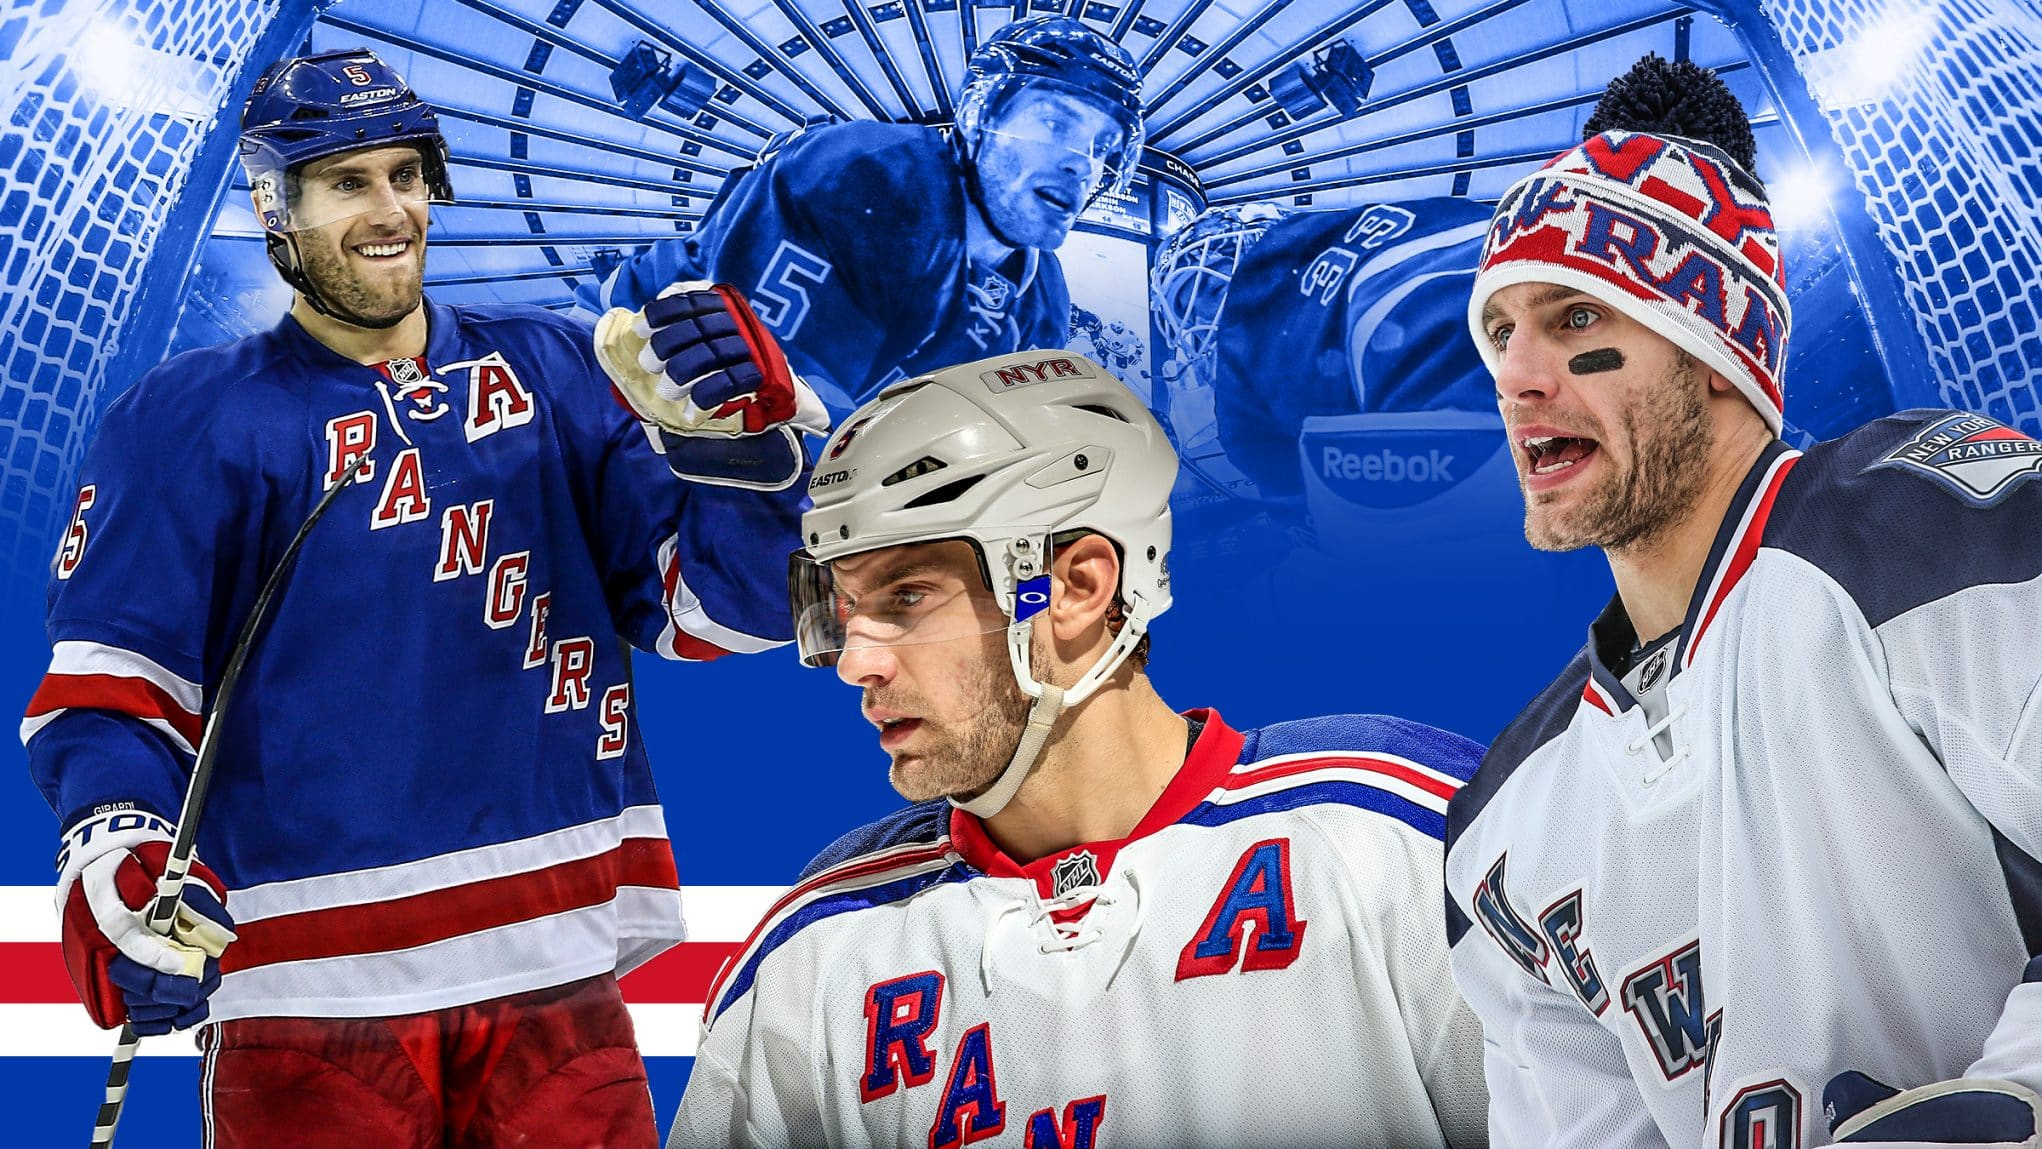 low priced 6a00f b6a5e Ranking Dan Girardi's 5 greatest plays with the New York Rangers